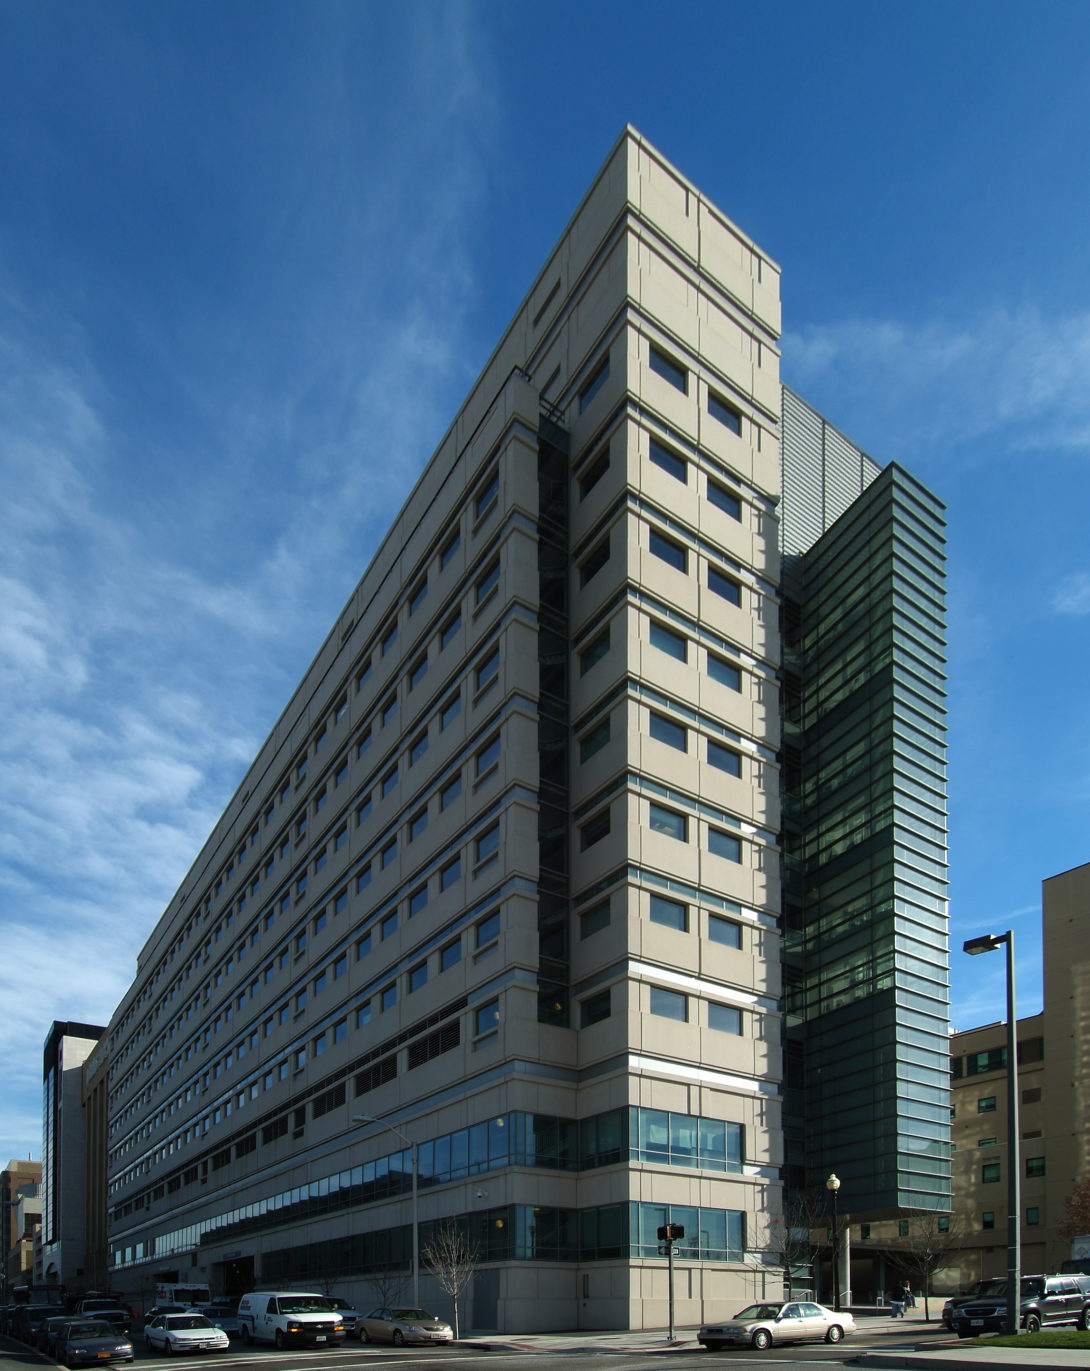 John Hopkins University – Broadway Research Building – Baltimore, Maryland